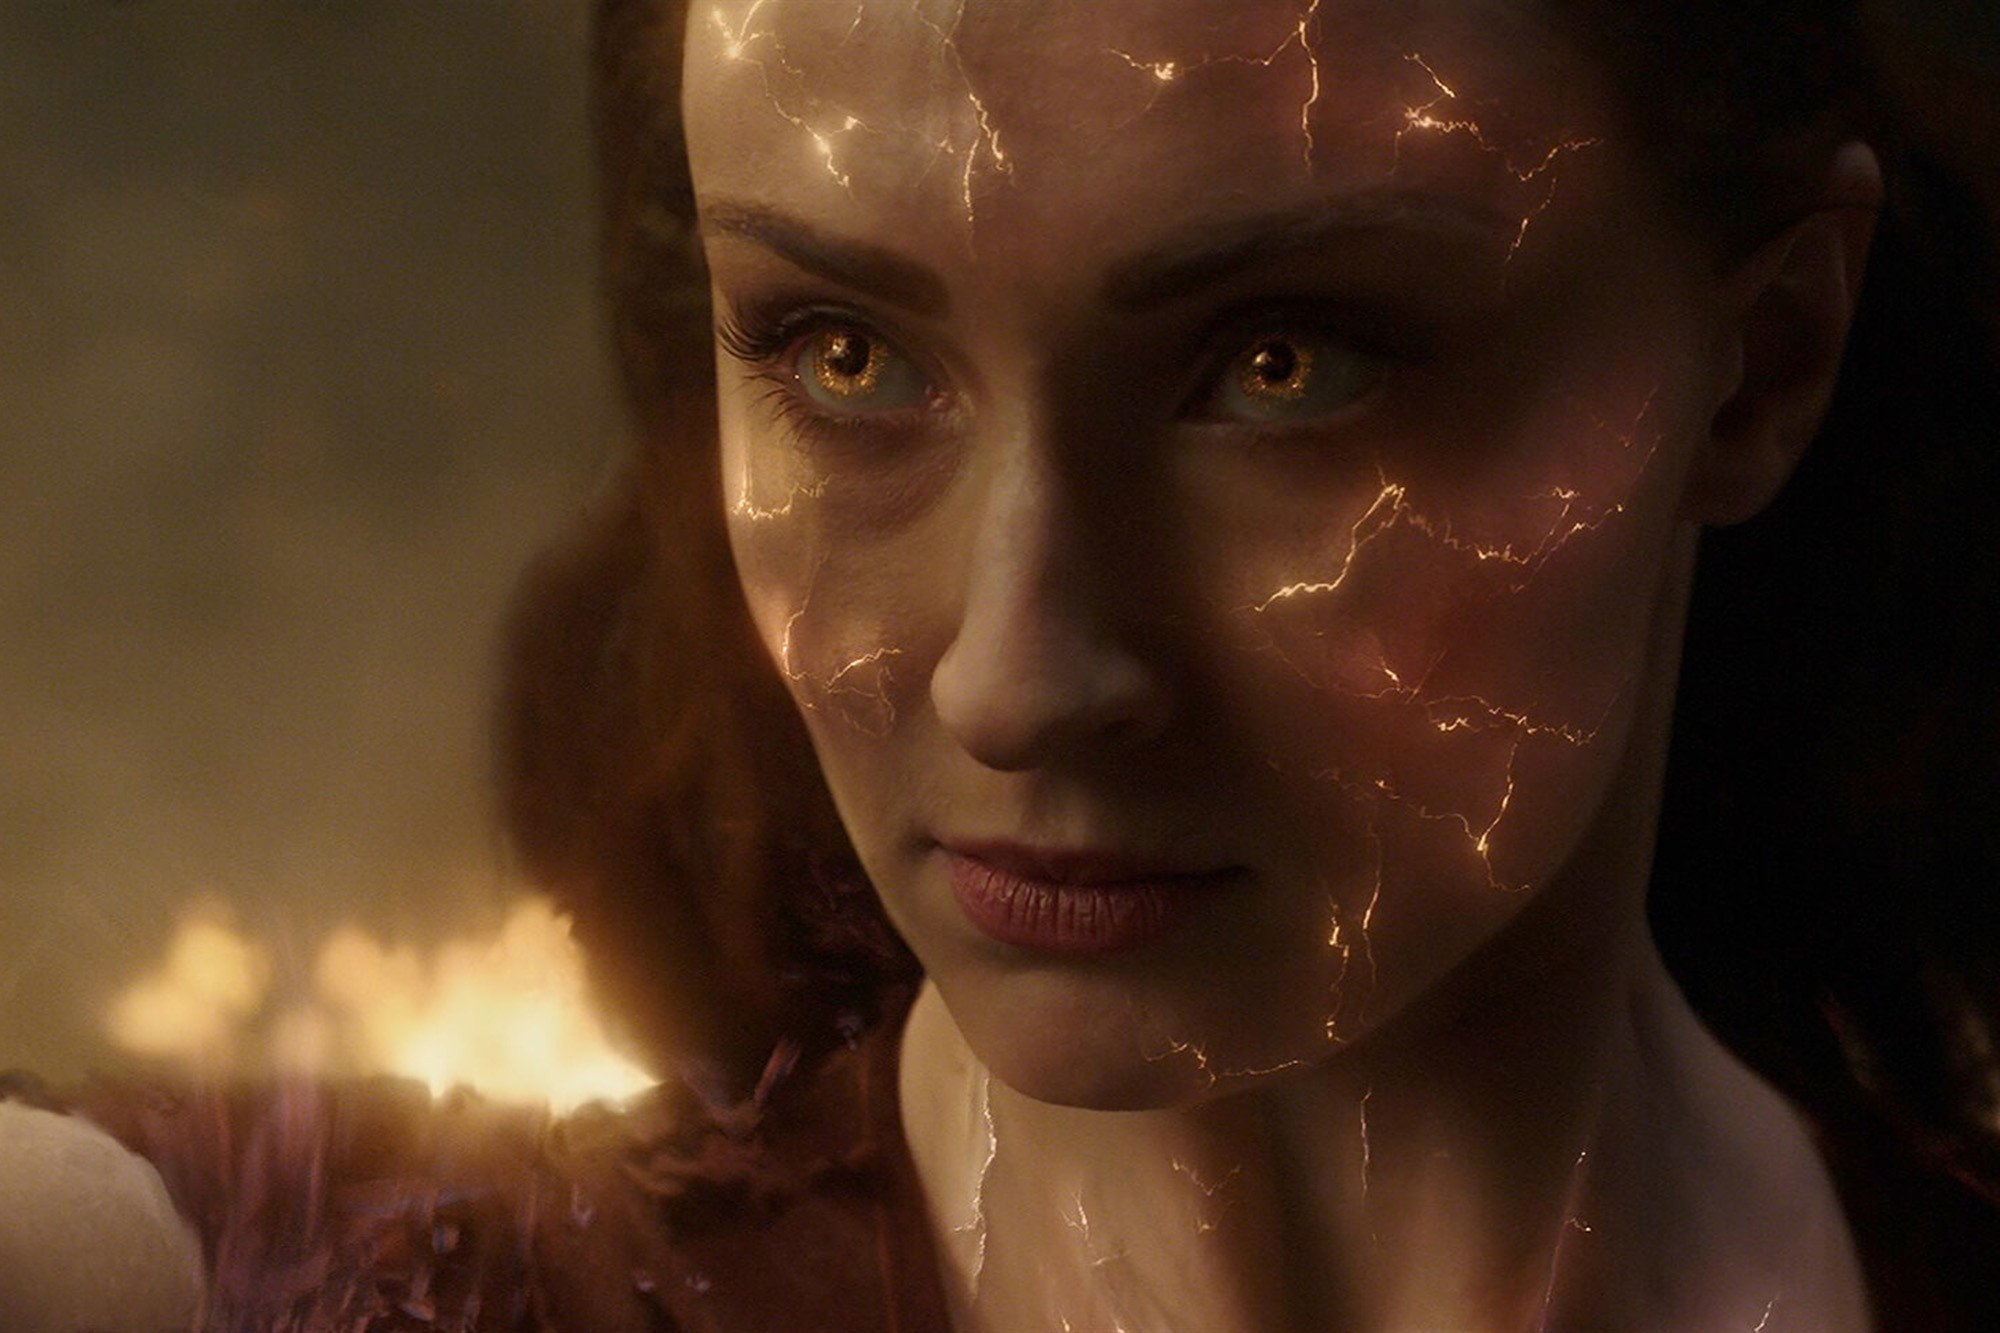 DARK PHOENIX DAY Declared in Los Angeles